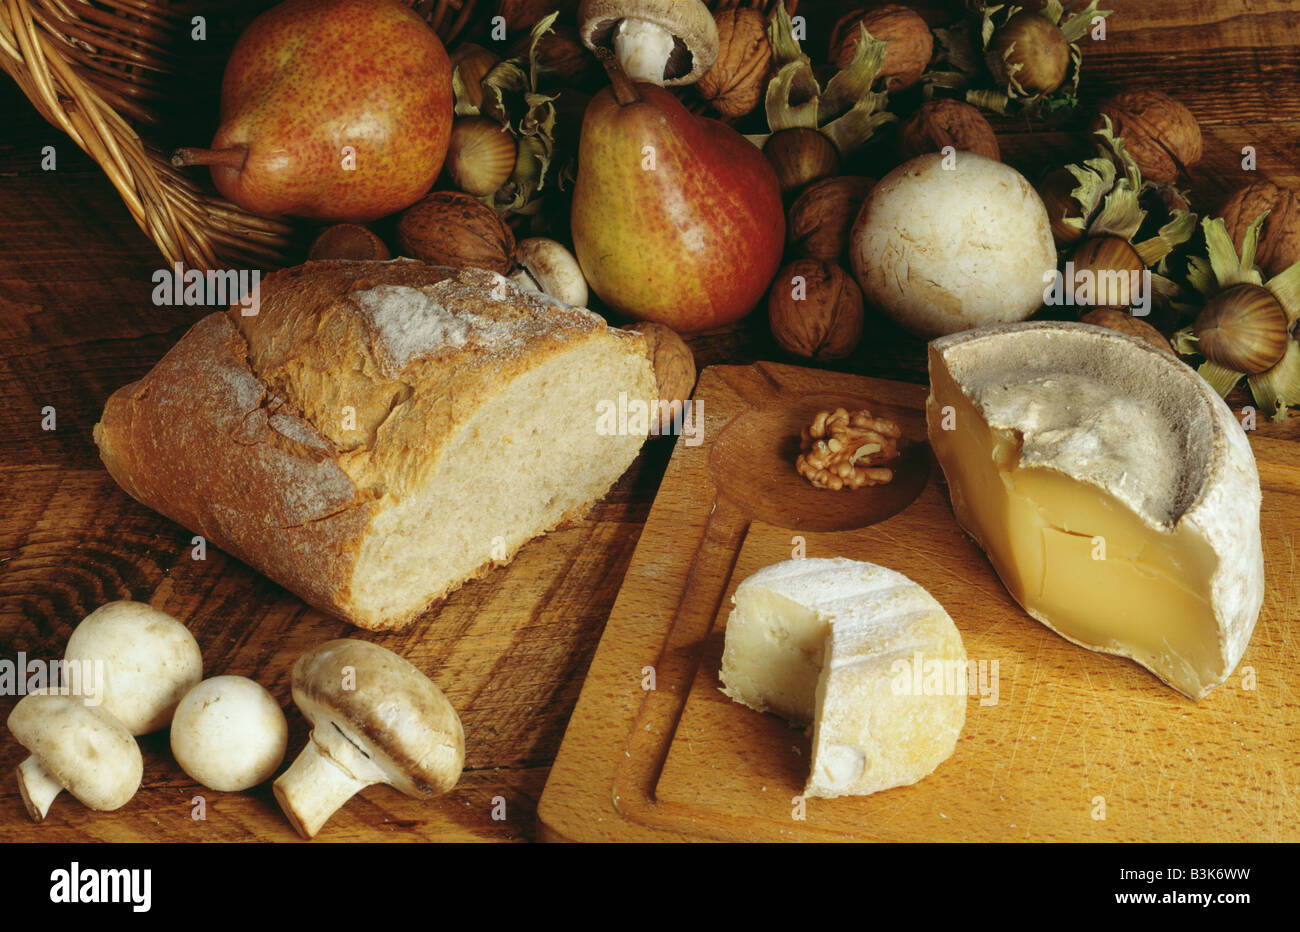 Cheese and bread composition pain et fromages - Stock Image